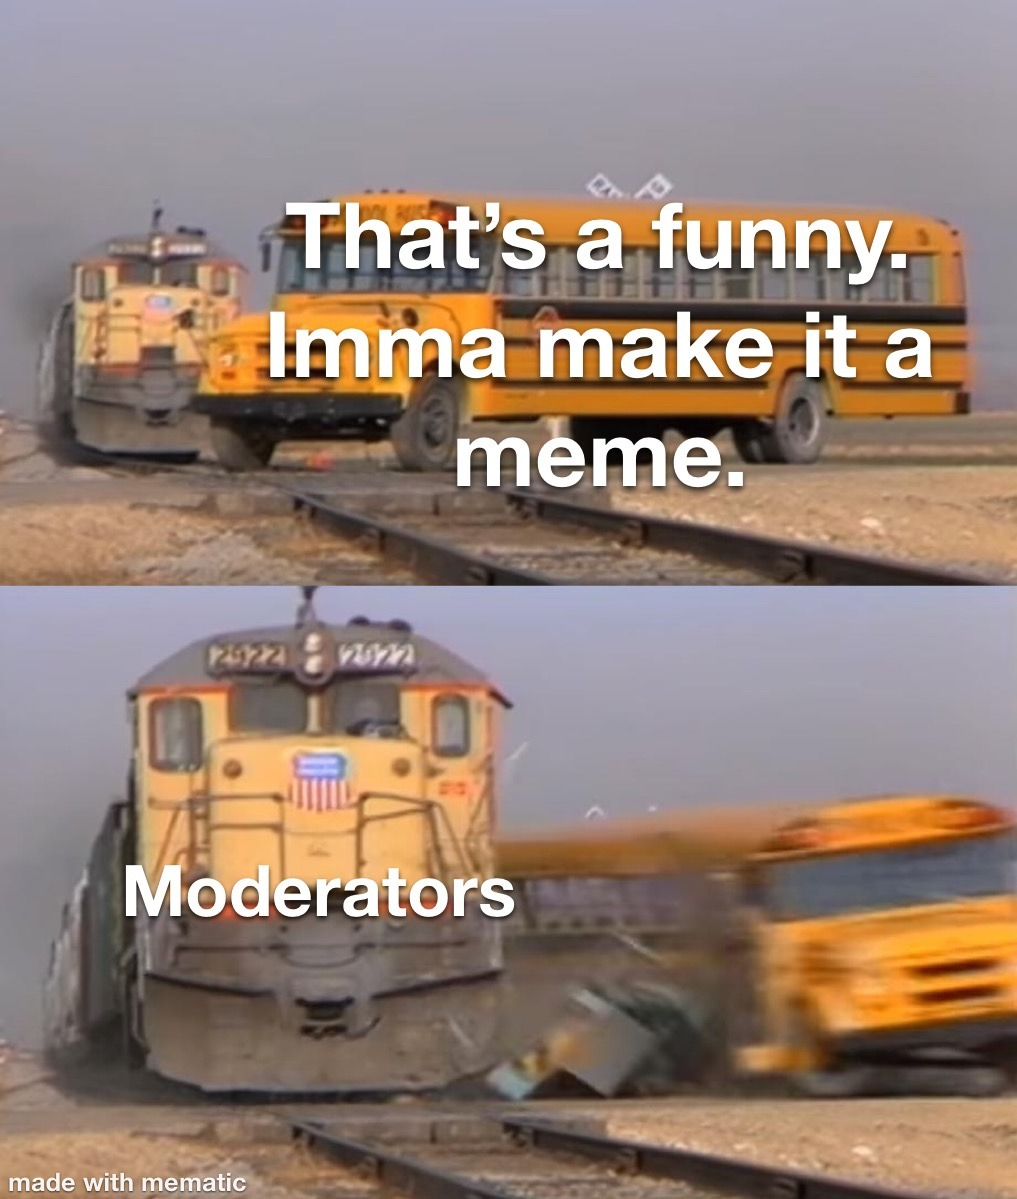 moderation ruins funny's - meme